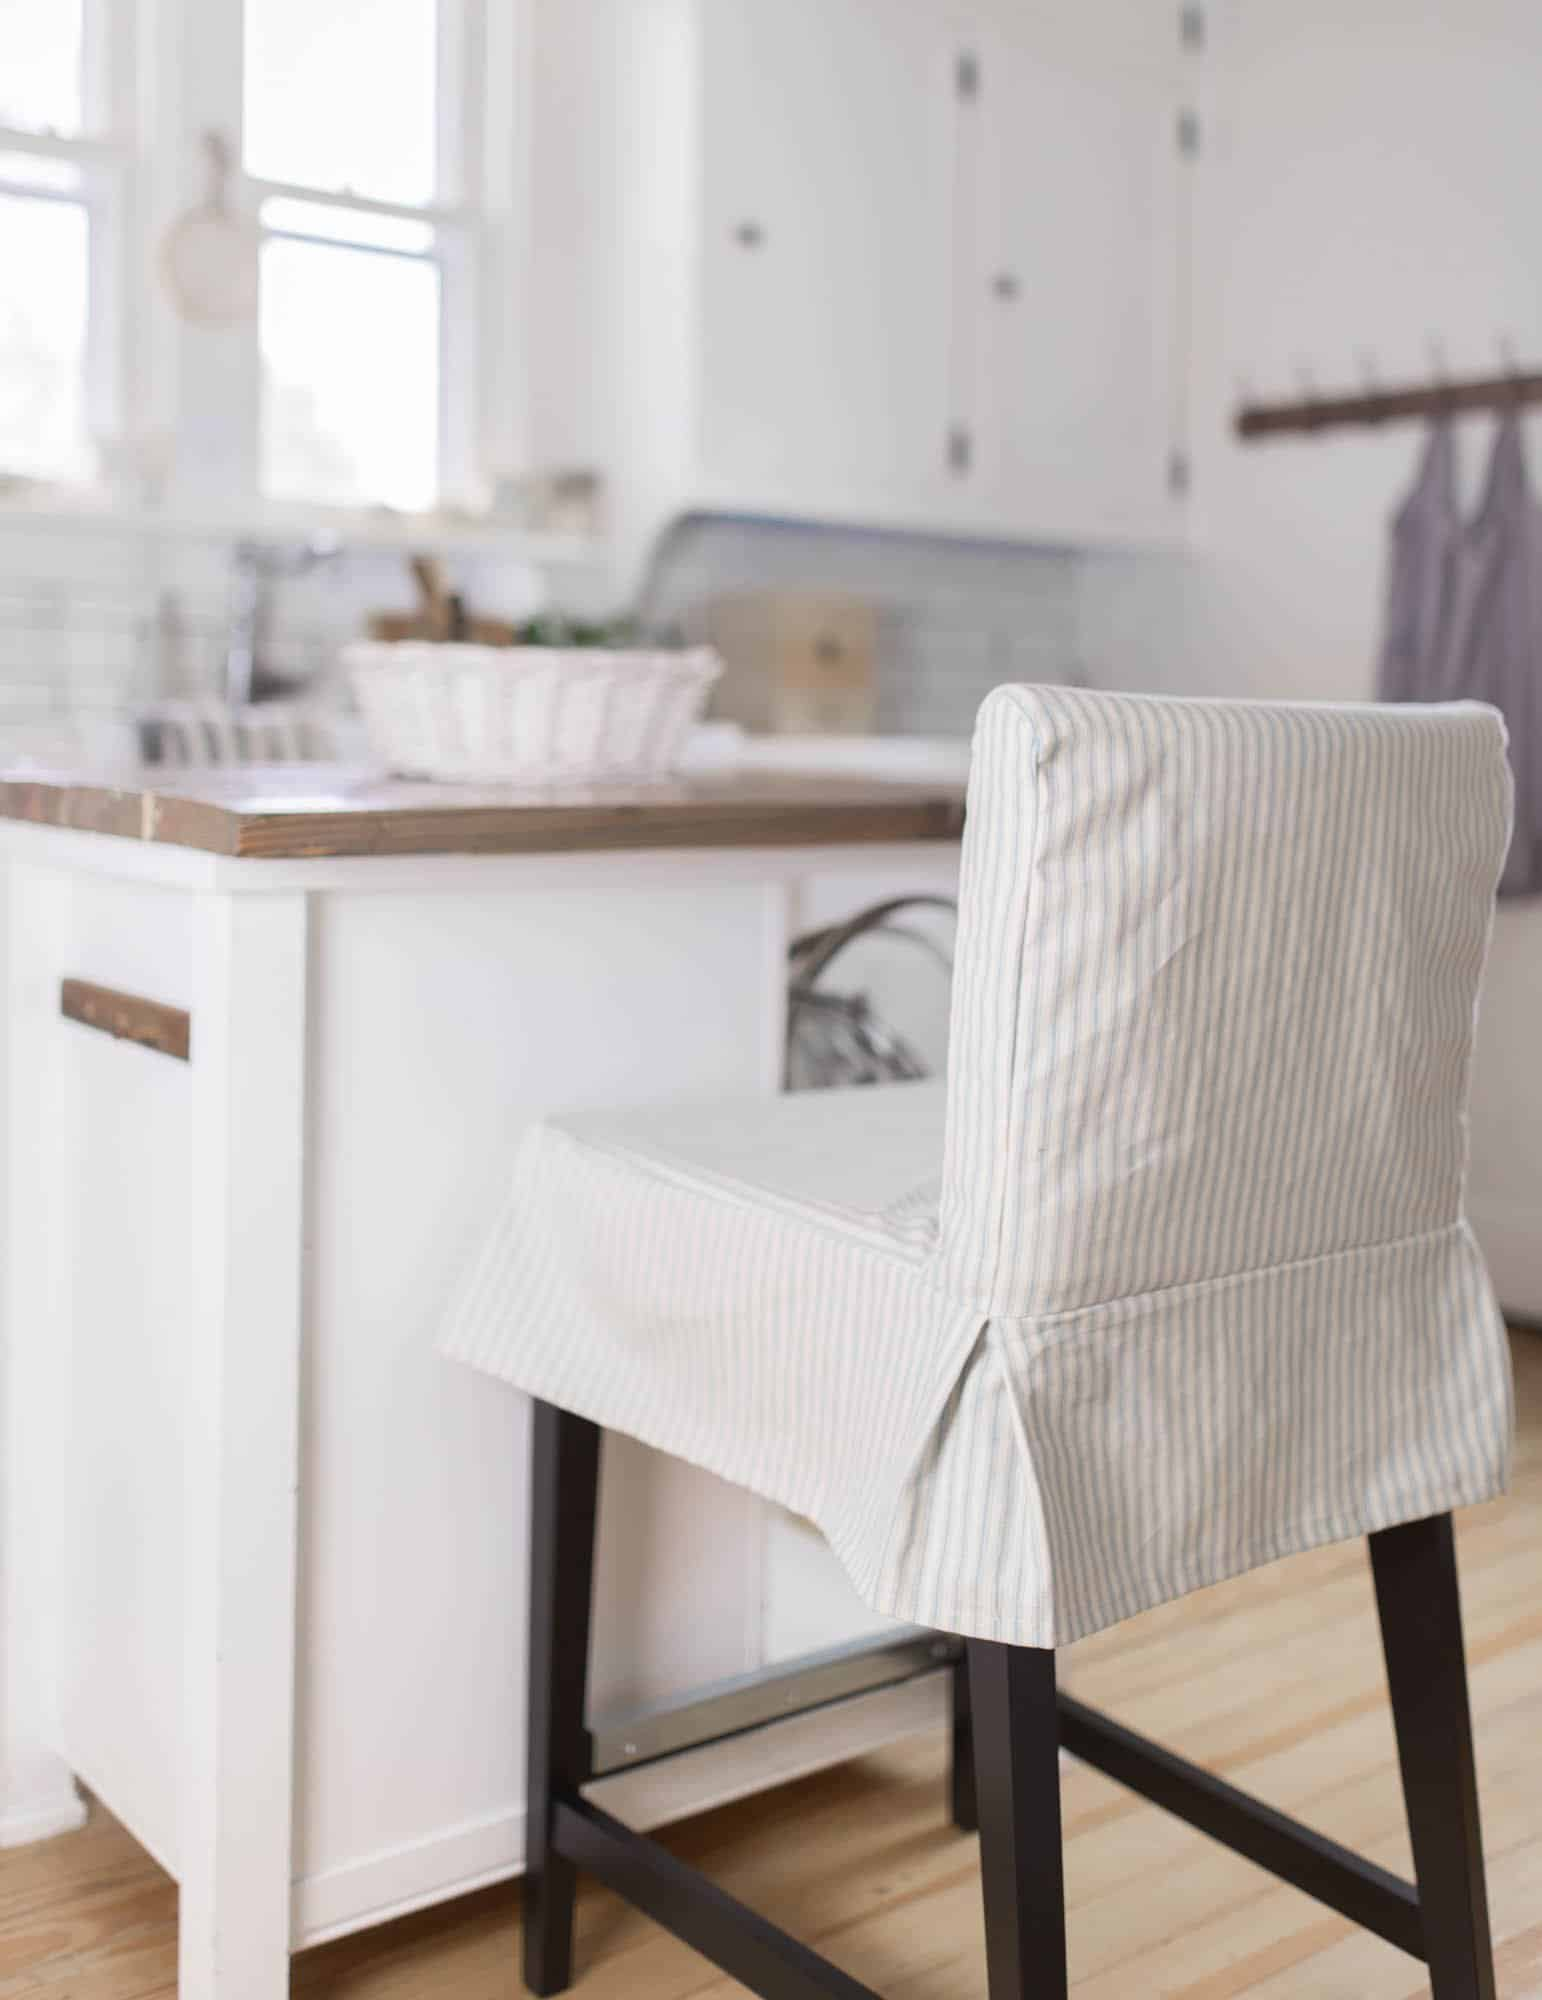 Learn How To Sew A Parsons Chair Slipcover For The Ikea Henriksdal Bar  Stool. This Dining Room Chair Slipcover Sewing Pattern Includes A Video  Tutorial.